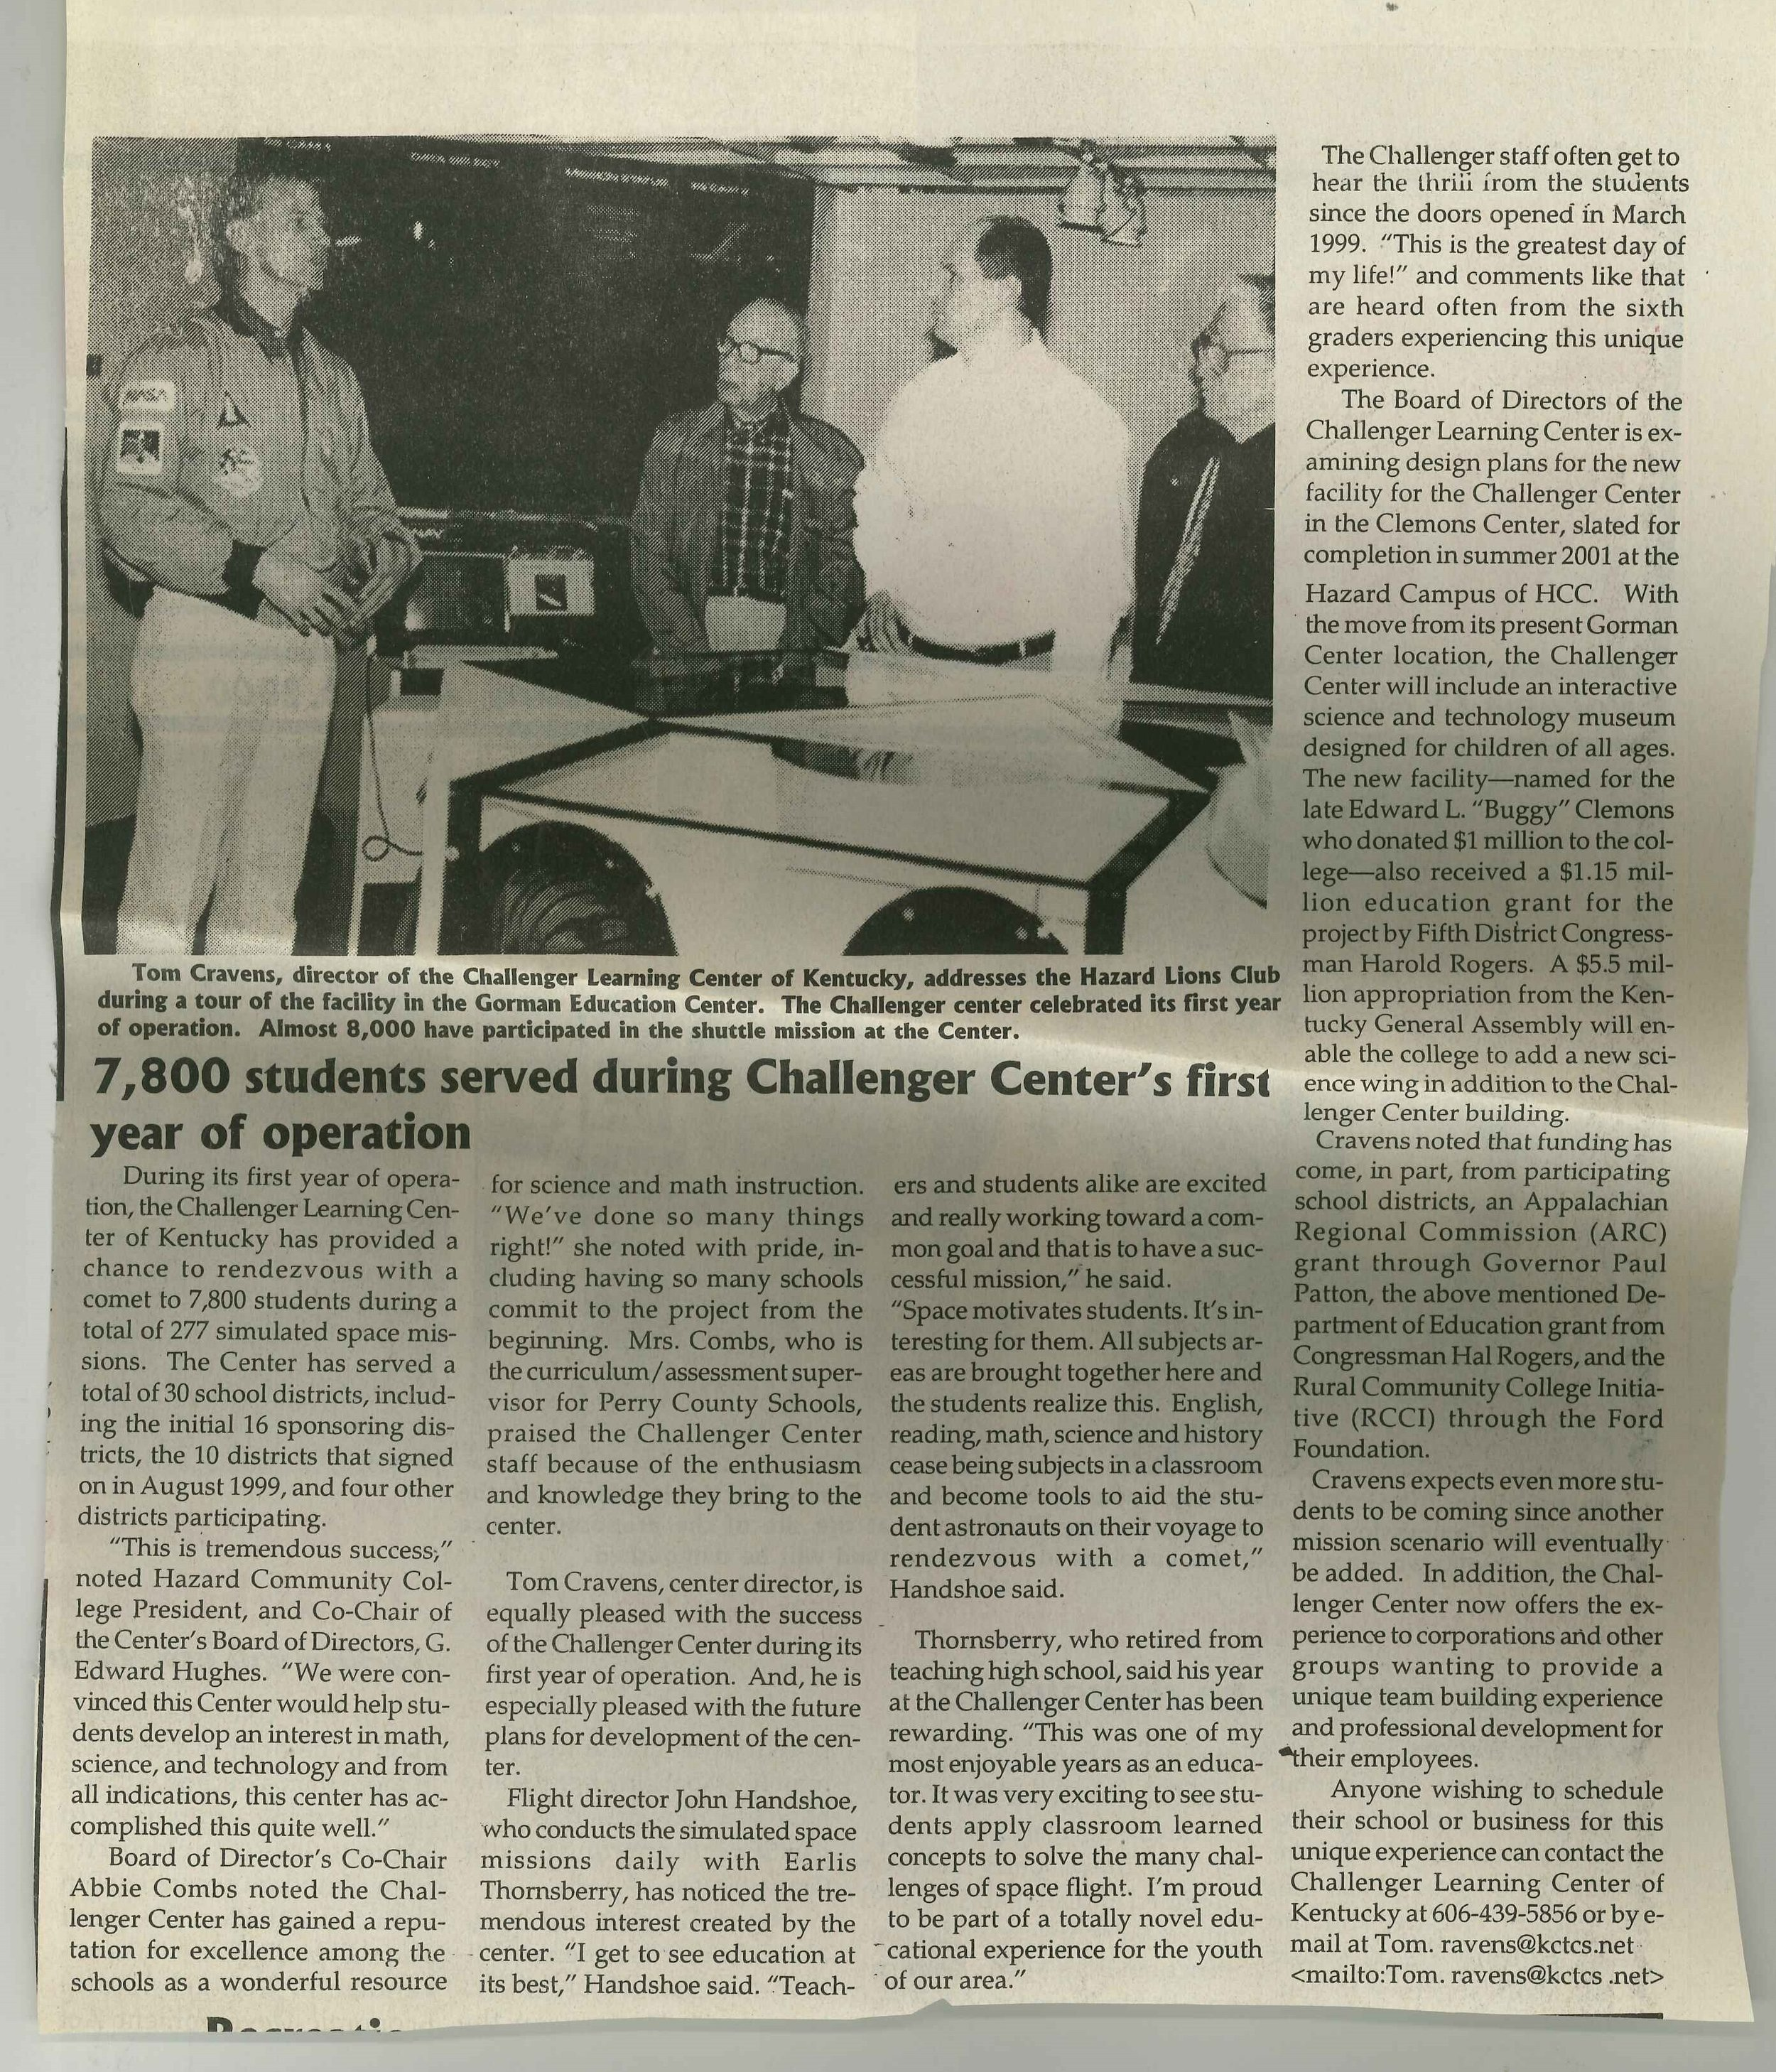 2000-04-06 Perry County News 7800 students served during challenger cernter first year of operation.jpg